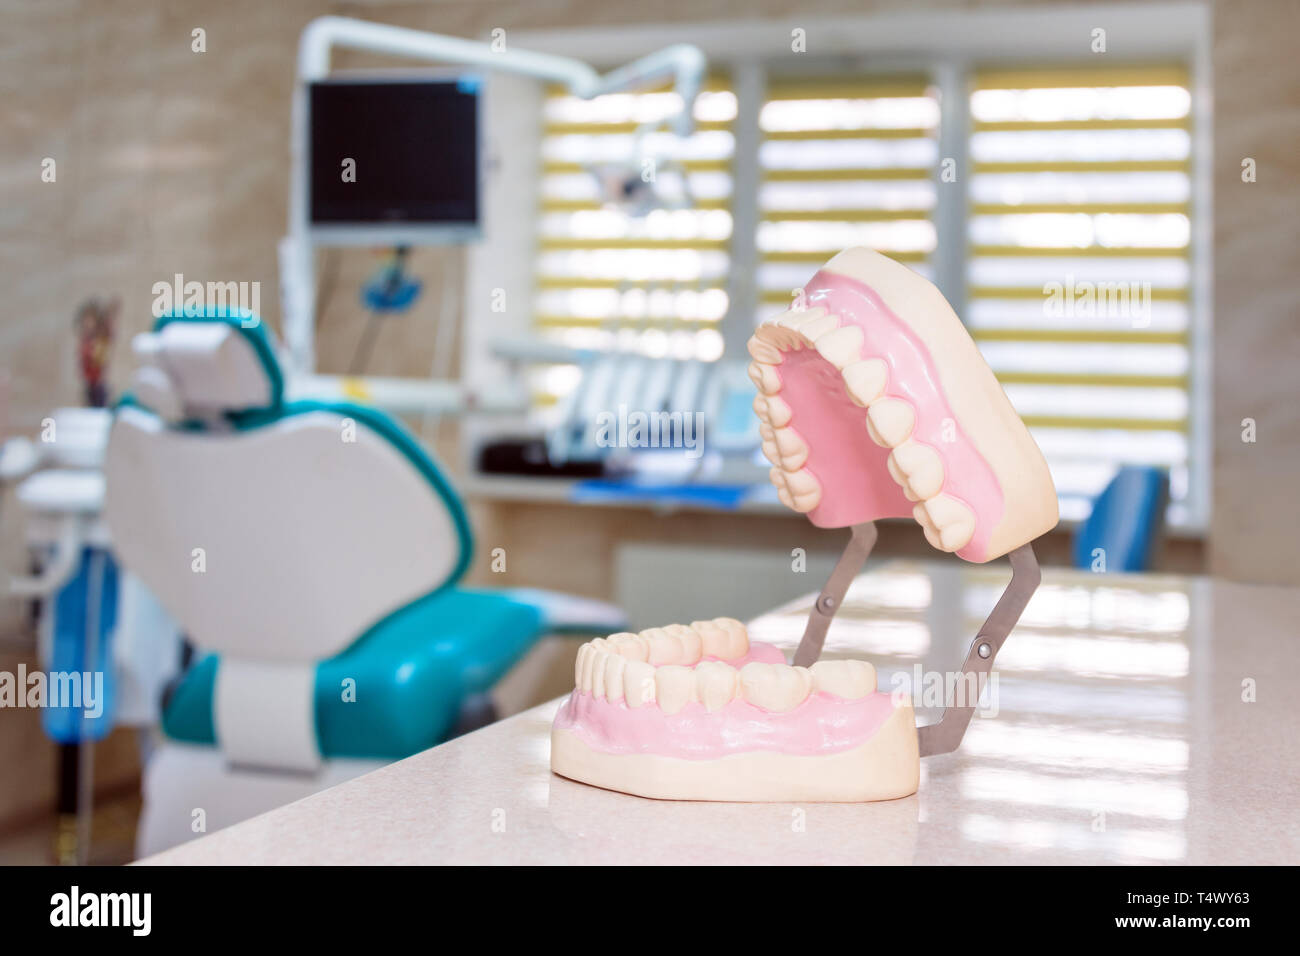 Human jaw models at a dentist office, teeth care and prosthetics concept. Artificial plastic jaw model for demonstrating dental care rules to patients - Stock Image